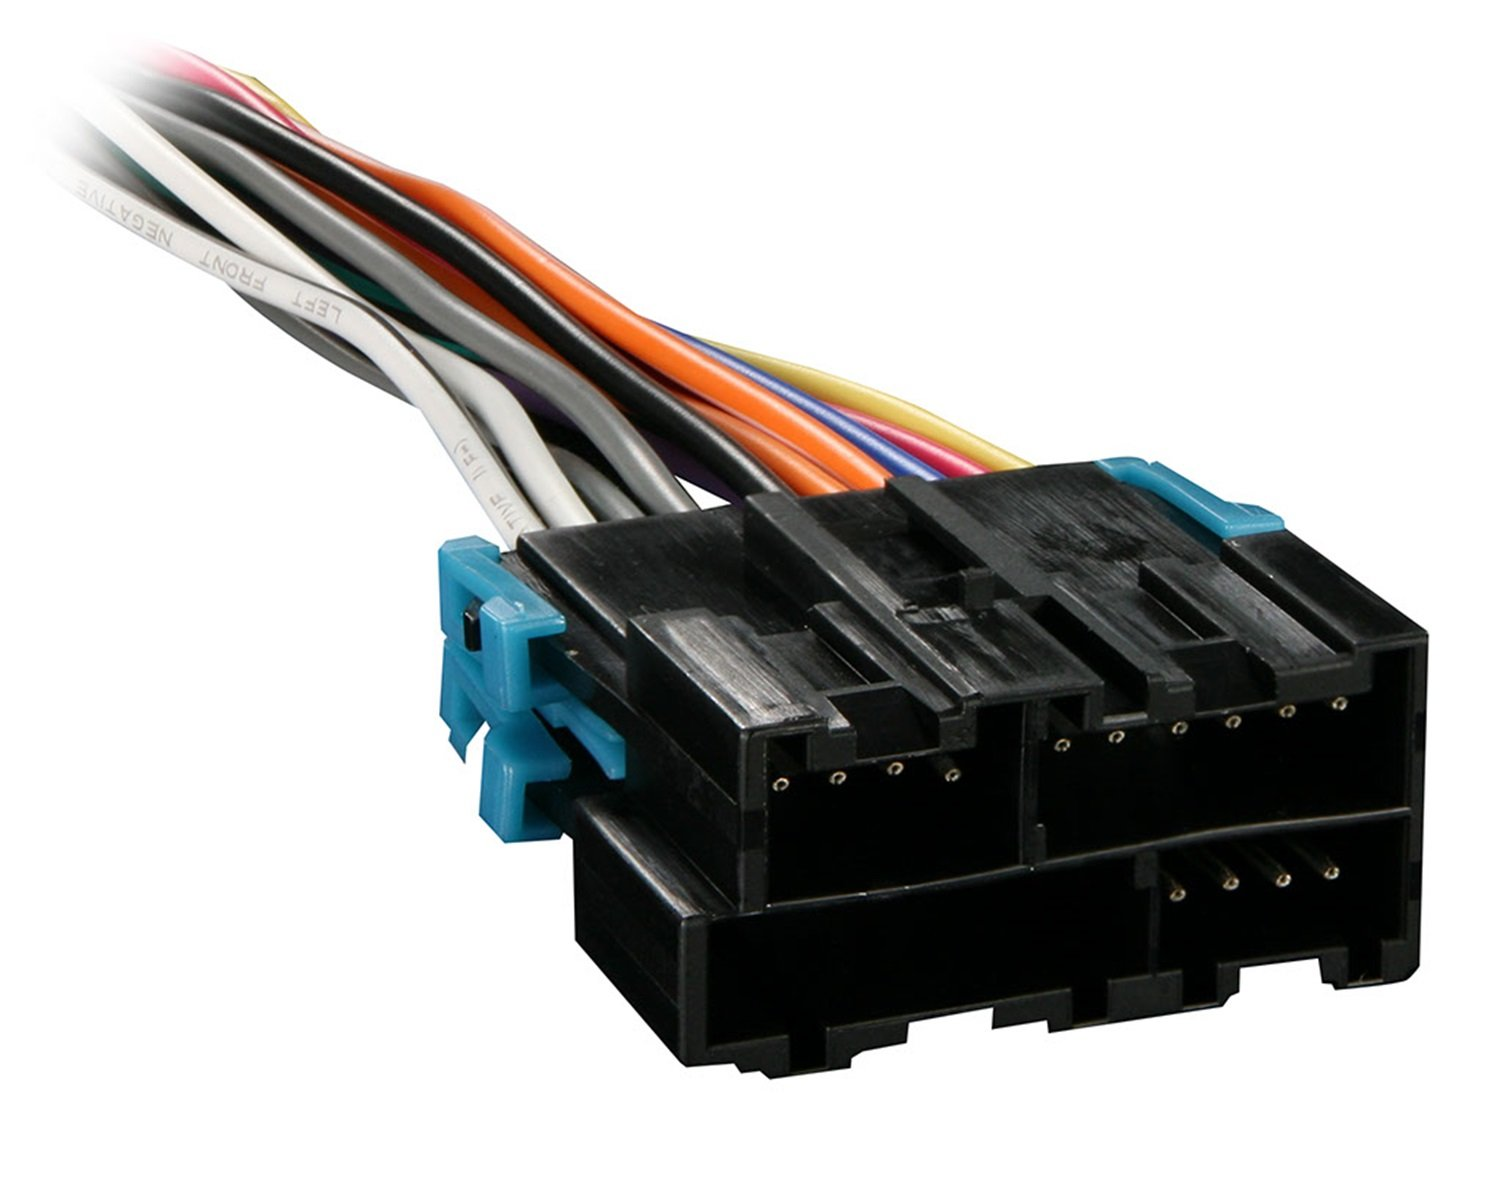 61 CwjZt1hL._SL1500_ radio wiring harnesses amazon com auto radio wire harness at crackthecode.co